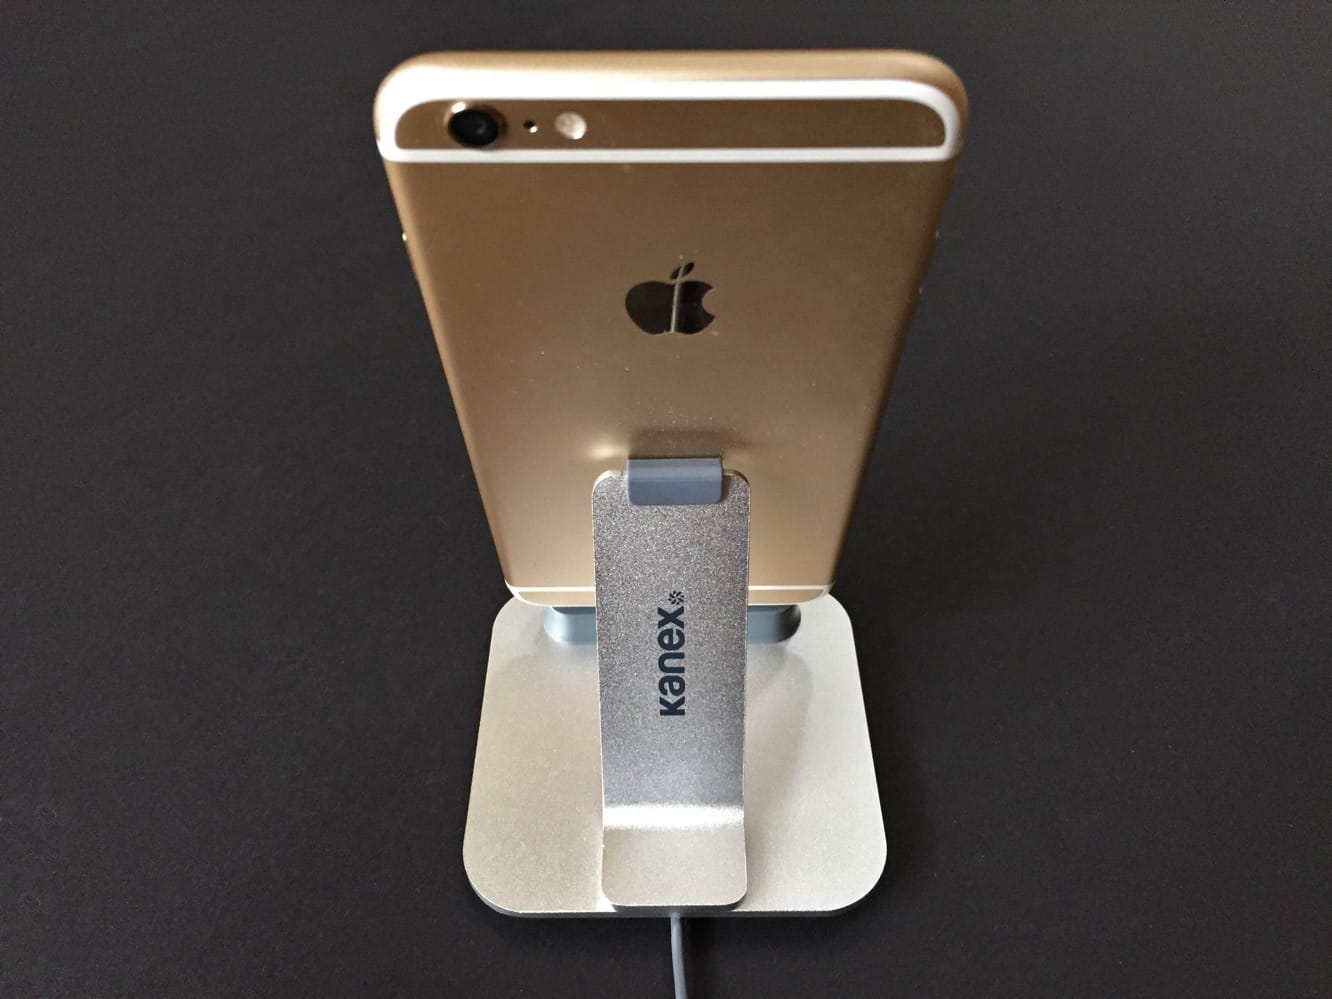 Review: Kanex iPhone ChargeSync Dock for iPhone 6 + iPhone 6 Plus